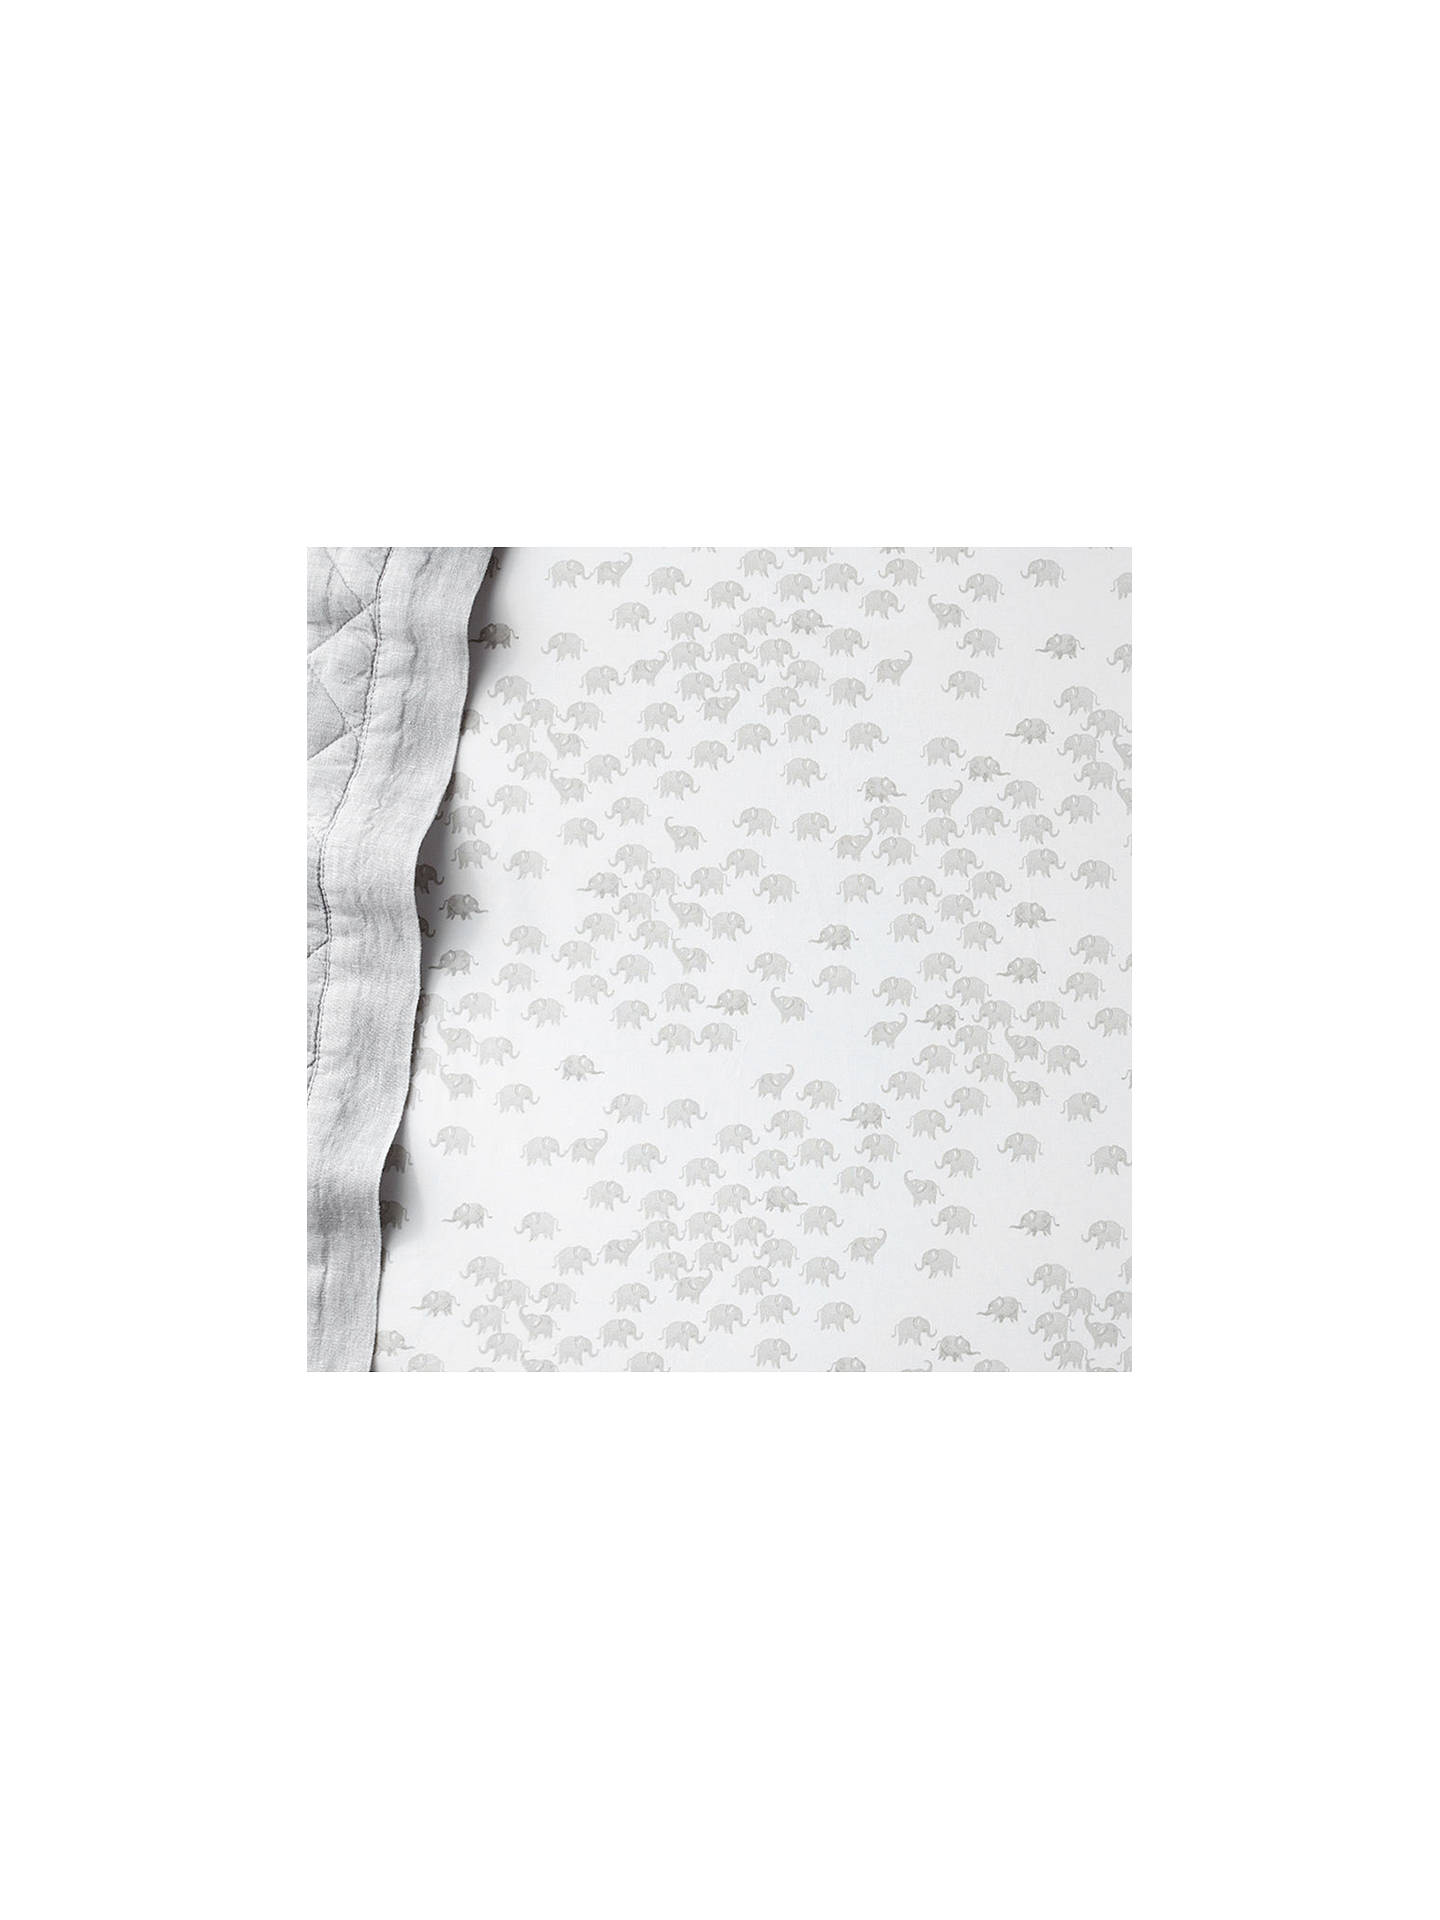 BuyPottery Barn Kids Elephant Print Fitted Cot Sheet, 70 x 132cm, Grey Online at johnlewis.com